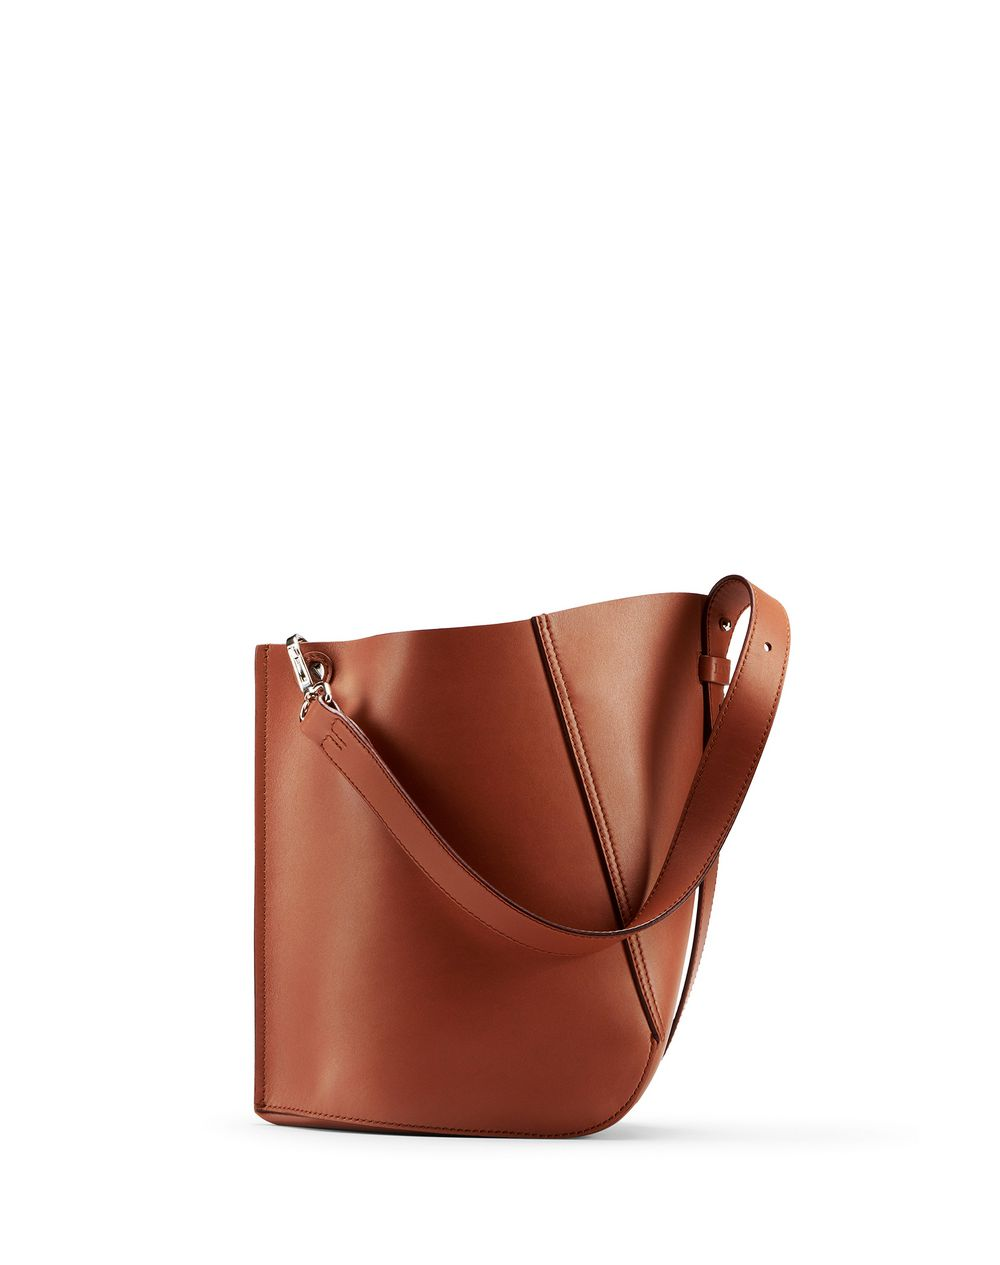 SMALL HOOK BAG - Lanvin